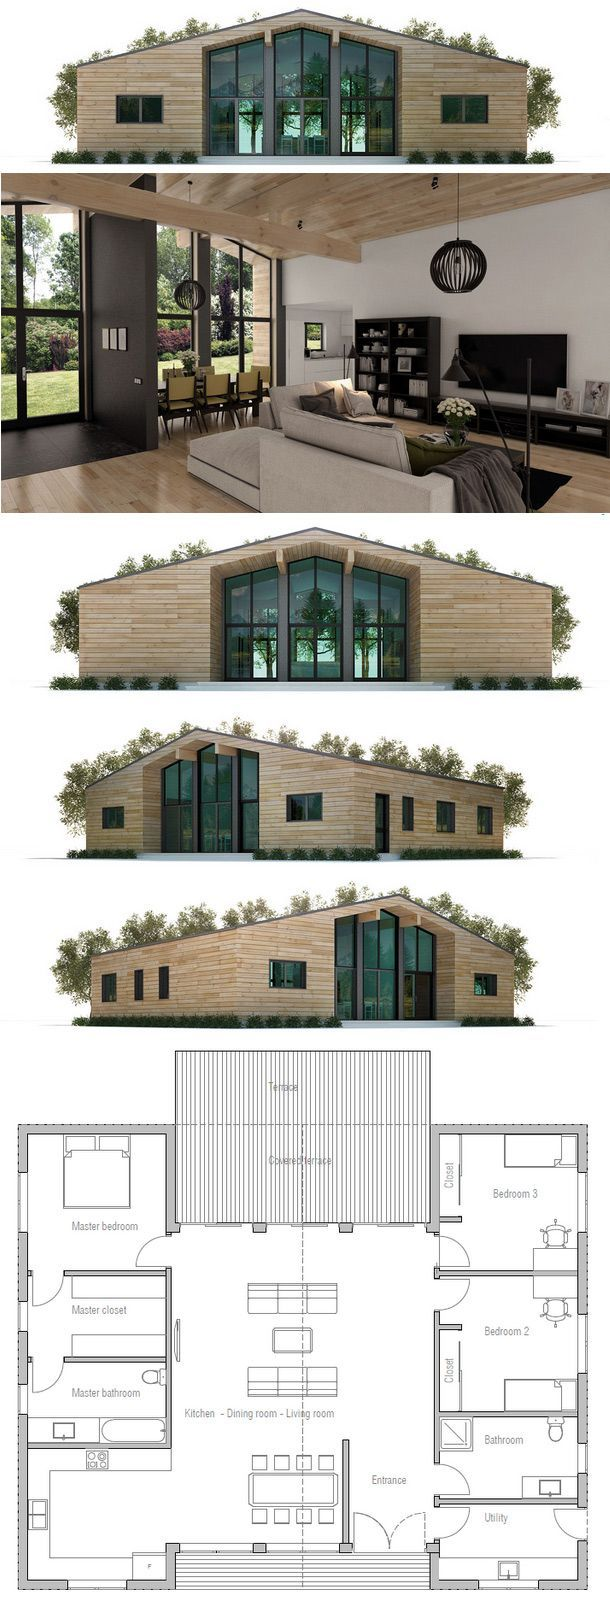 House Plan really like this very